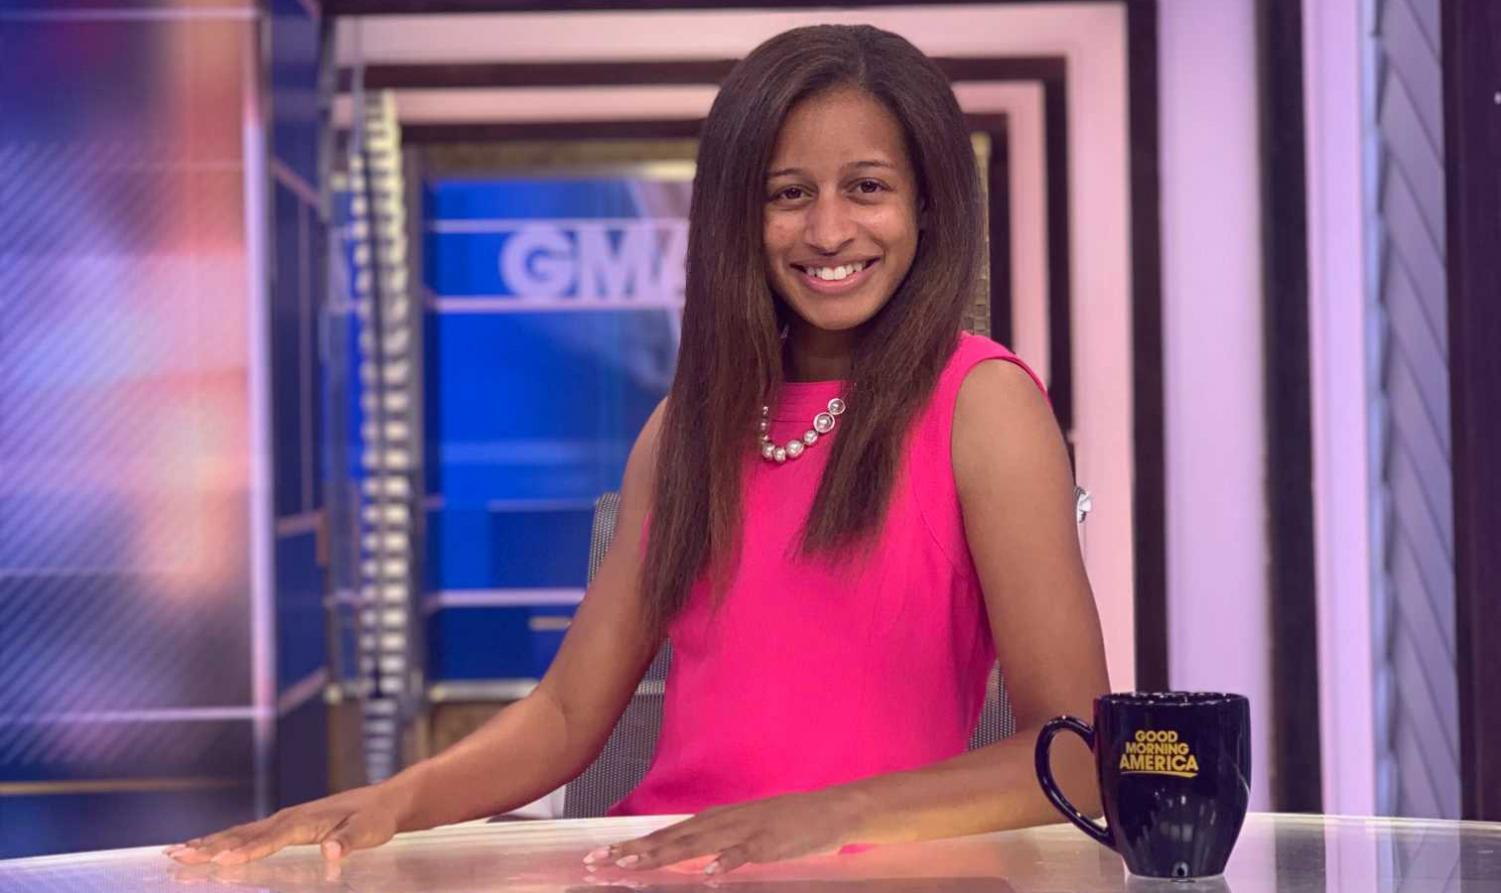 """Raychelle Riley, a junior communications major, poses for a photo in the set of """"Good Morning America."""" Riley did an internship in New York during summer."""